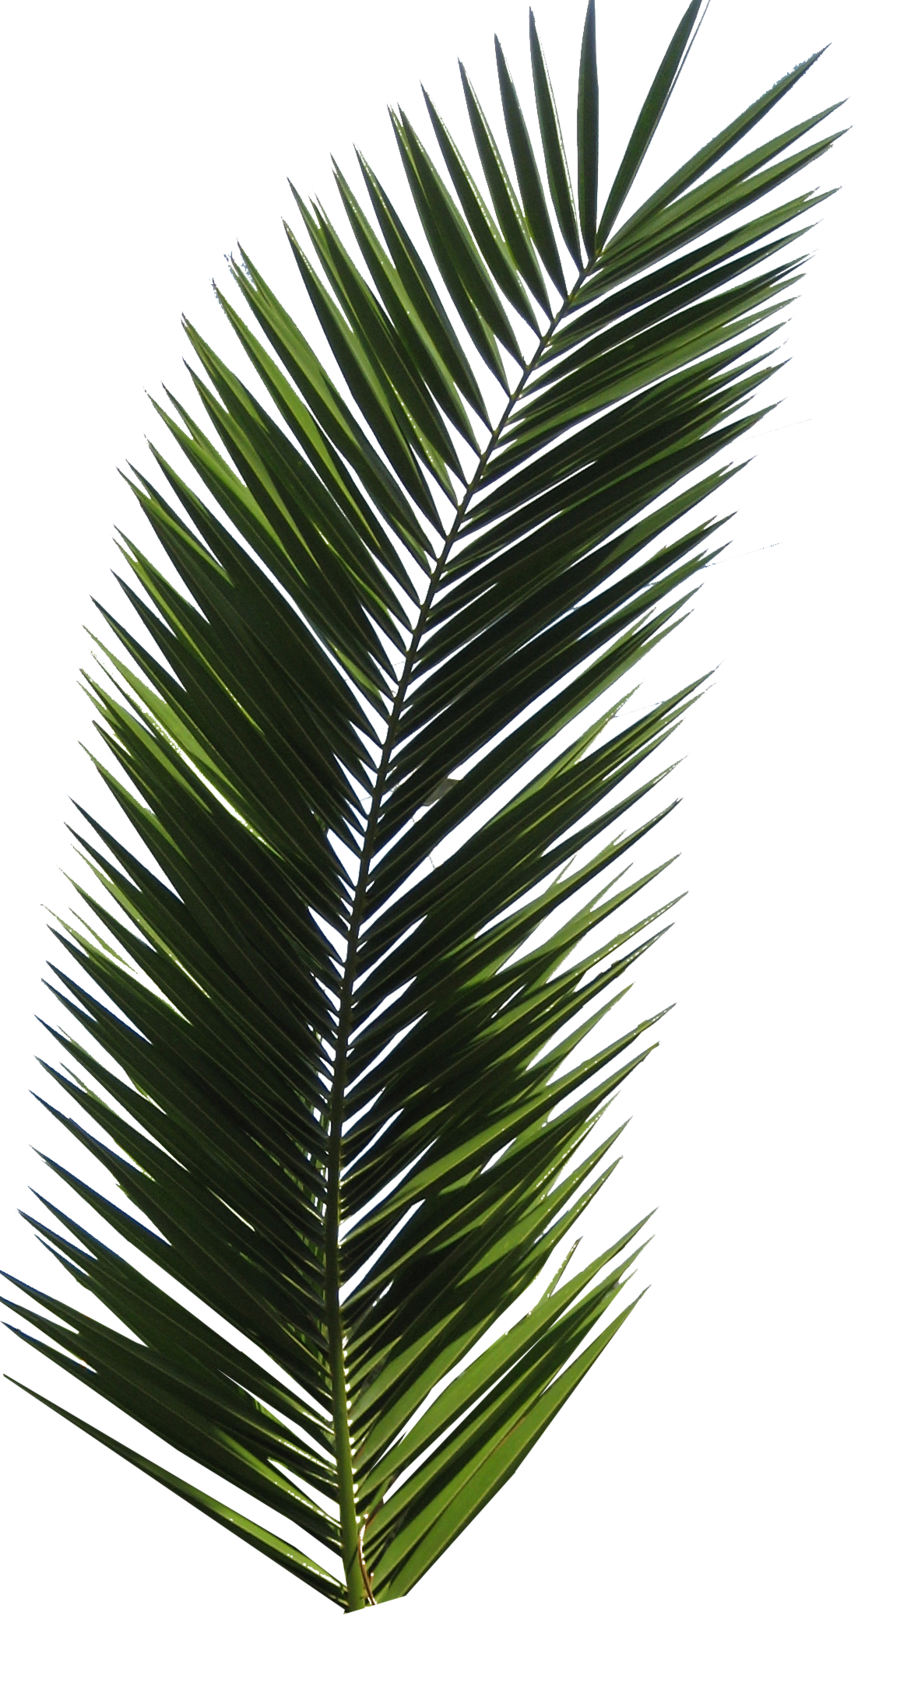 Palm leaf texture png. Tree images download free